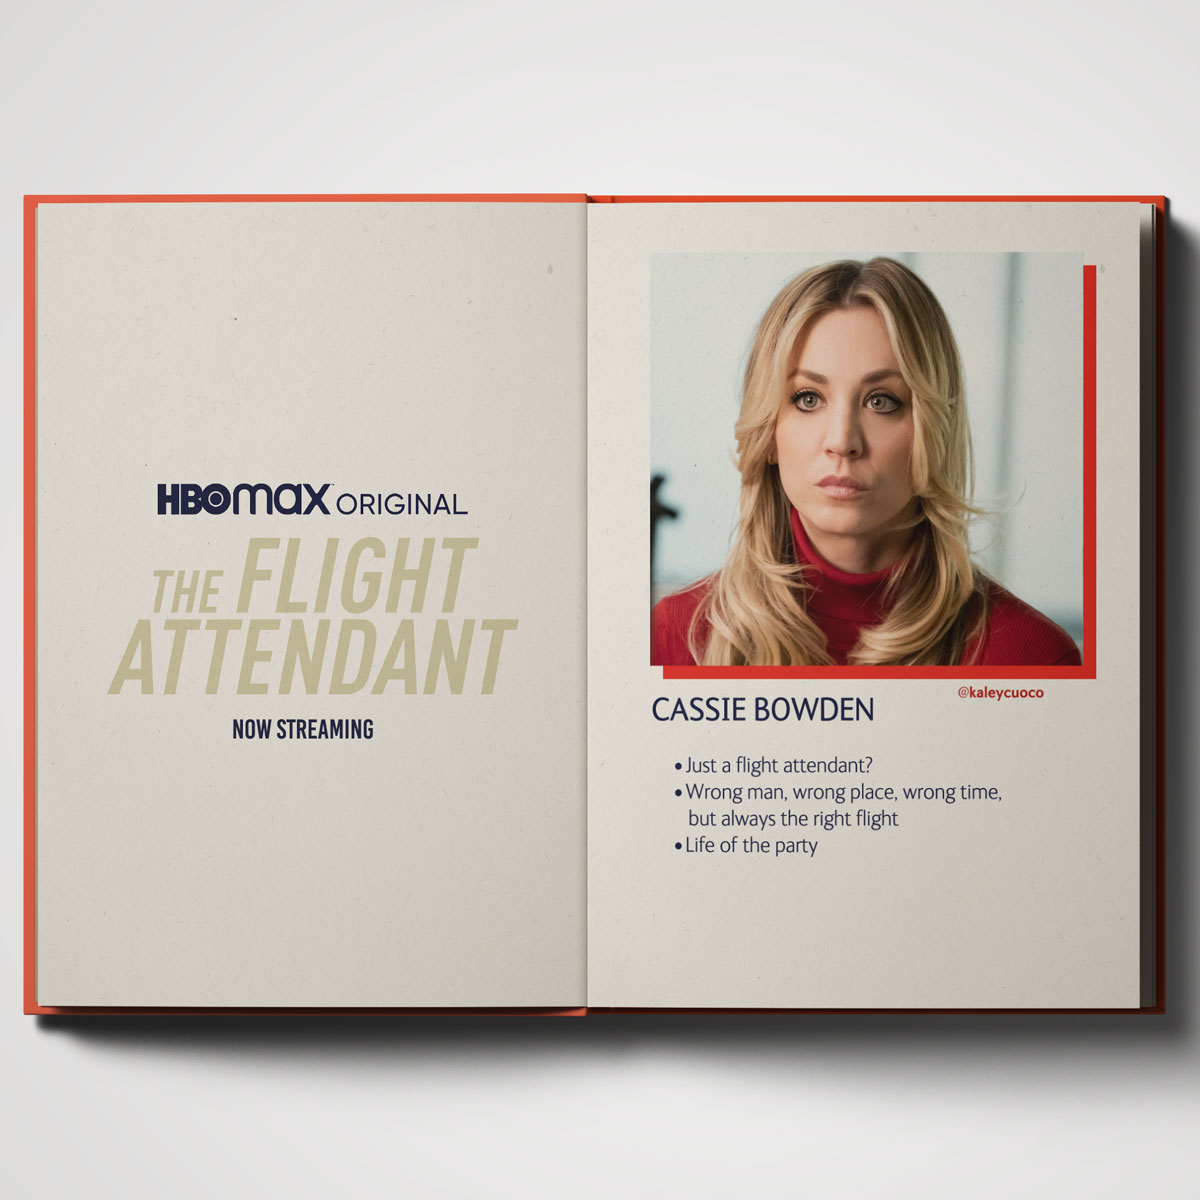 It's not just friends, board games, and Thai food anymore. Life just got serious for our girl Kaley Cuoco. The @FlightAttendant is now streaming on @HBOMax.